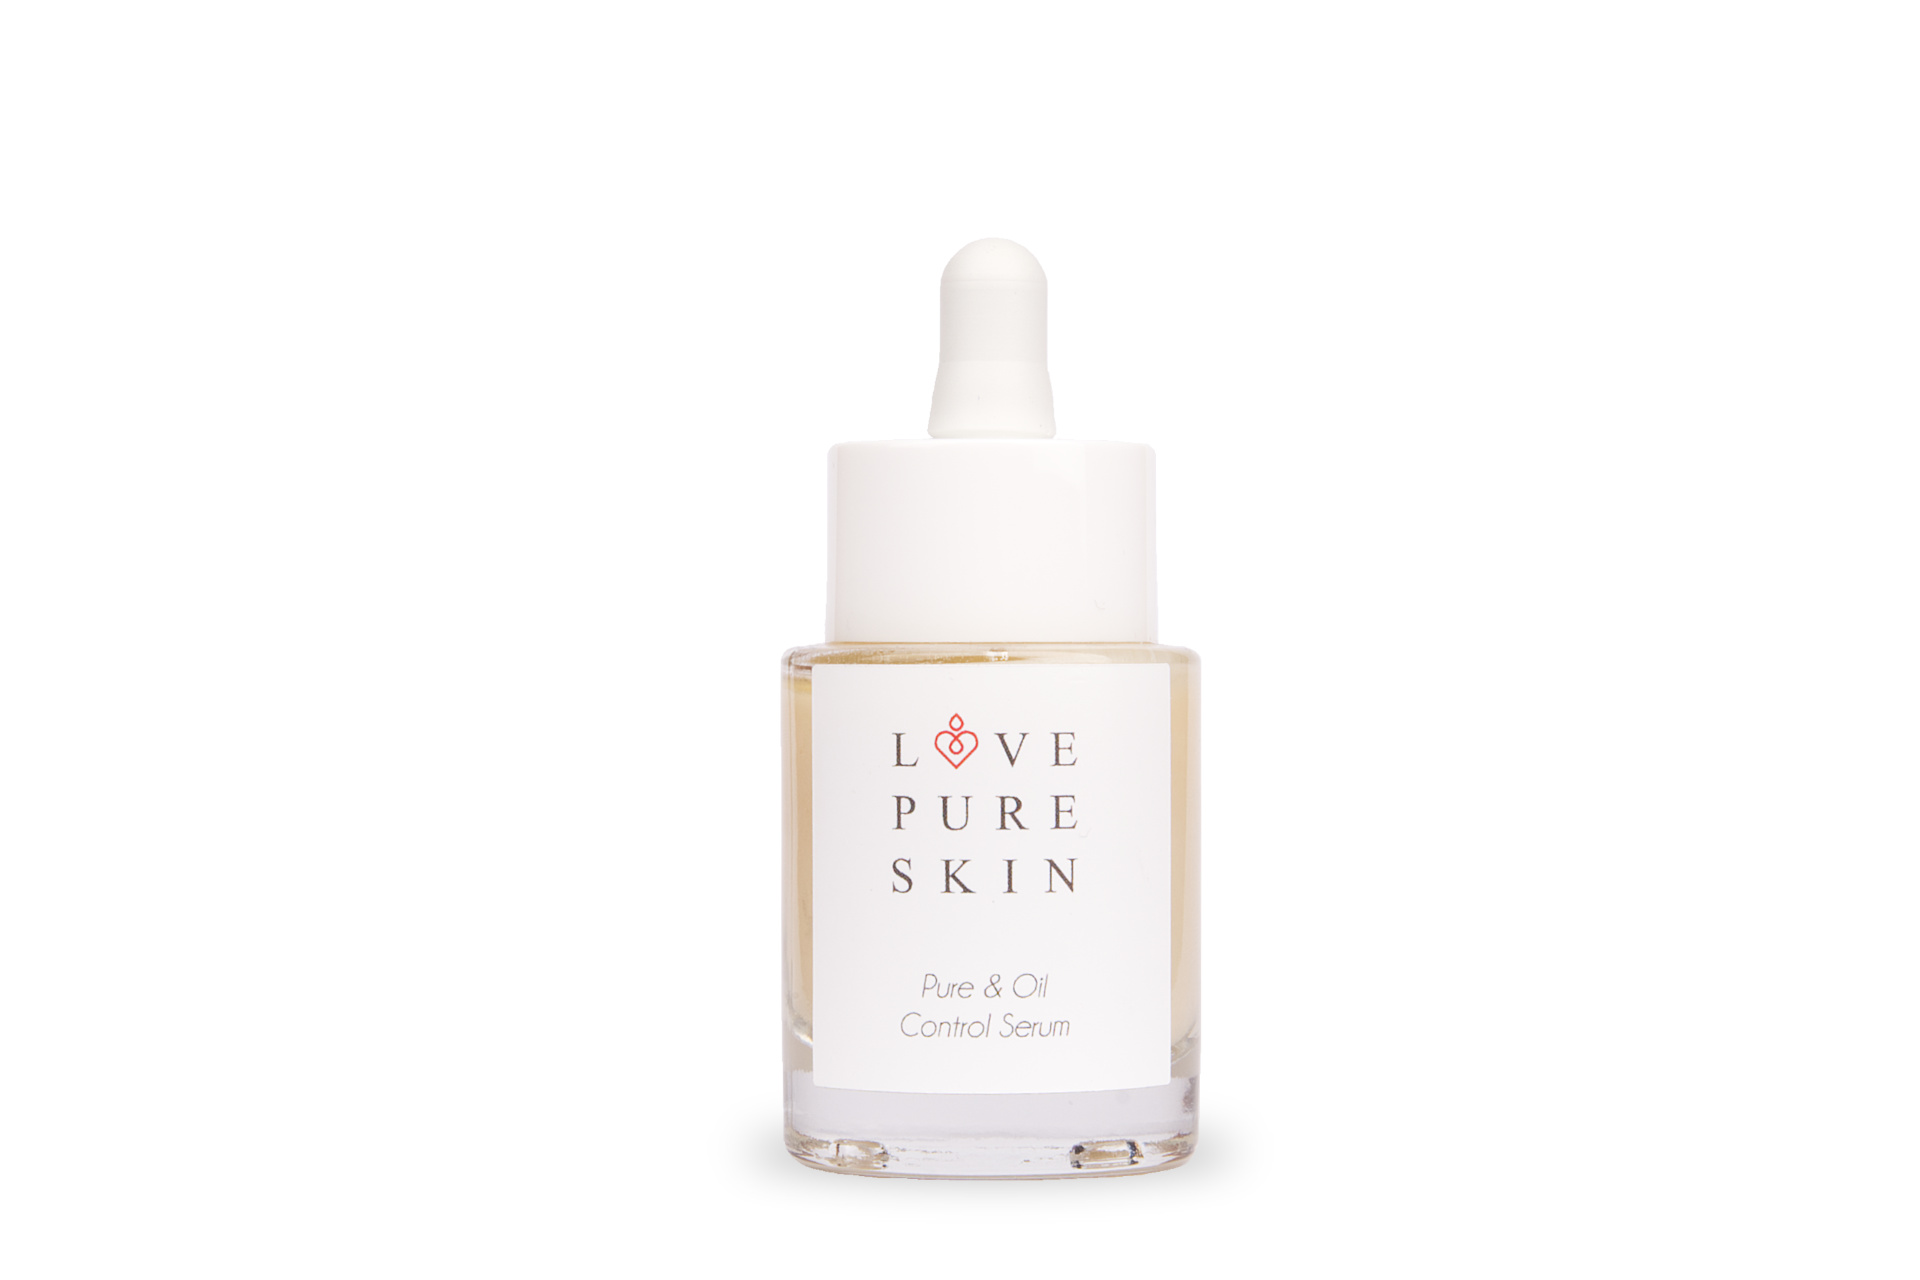 Pure & Oil Control Serum